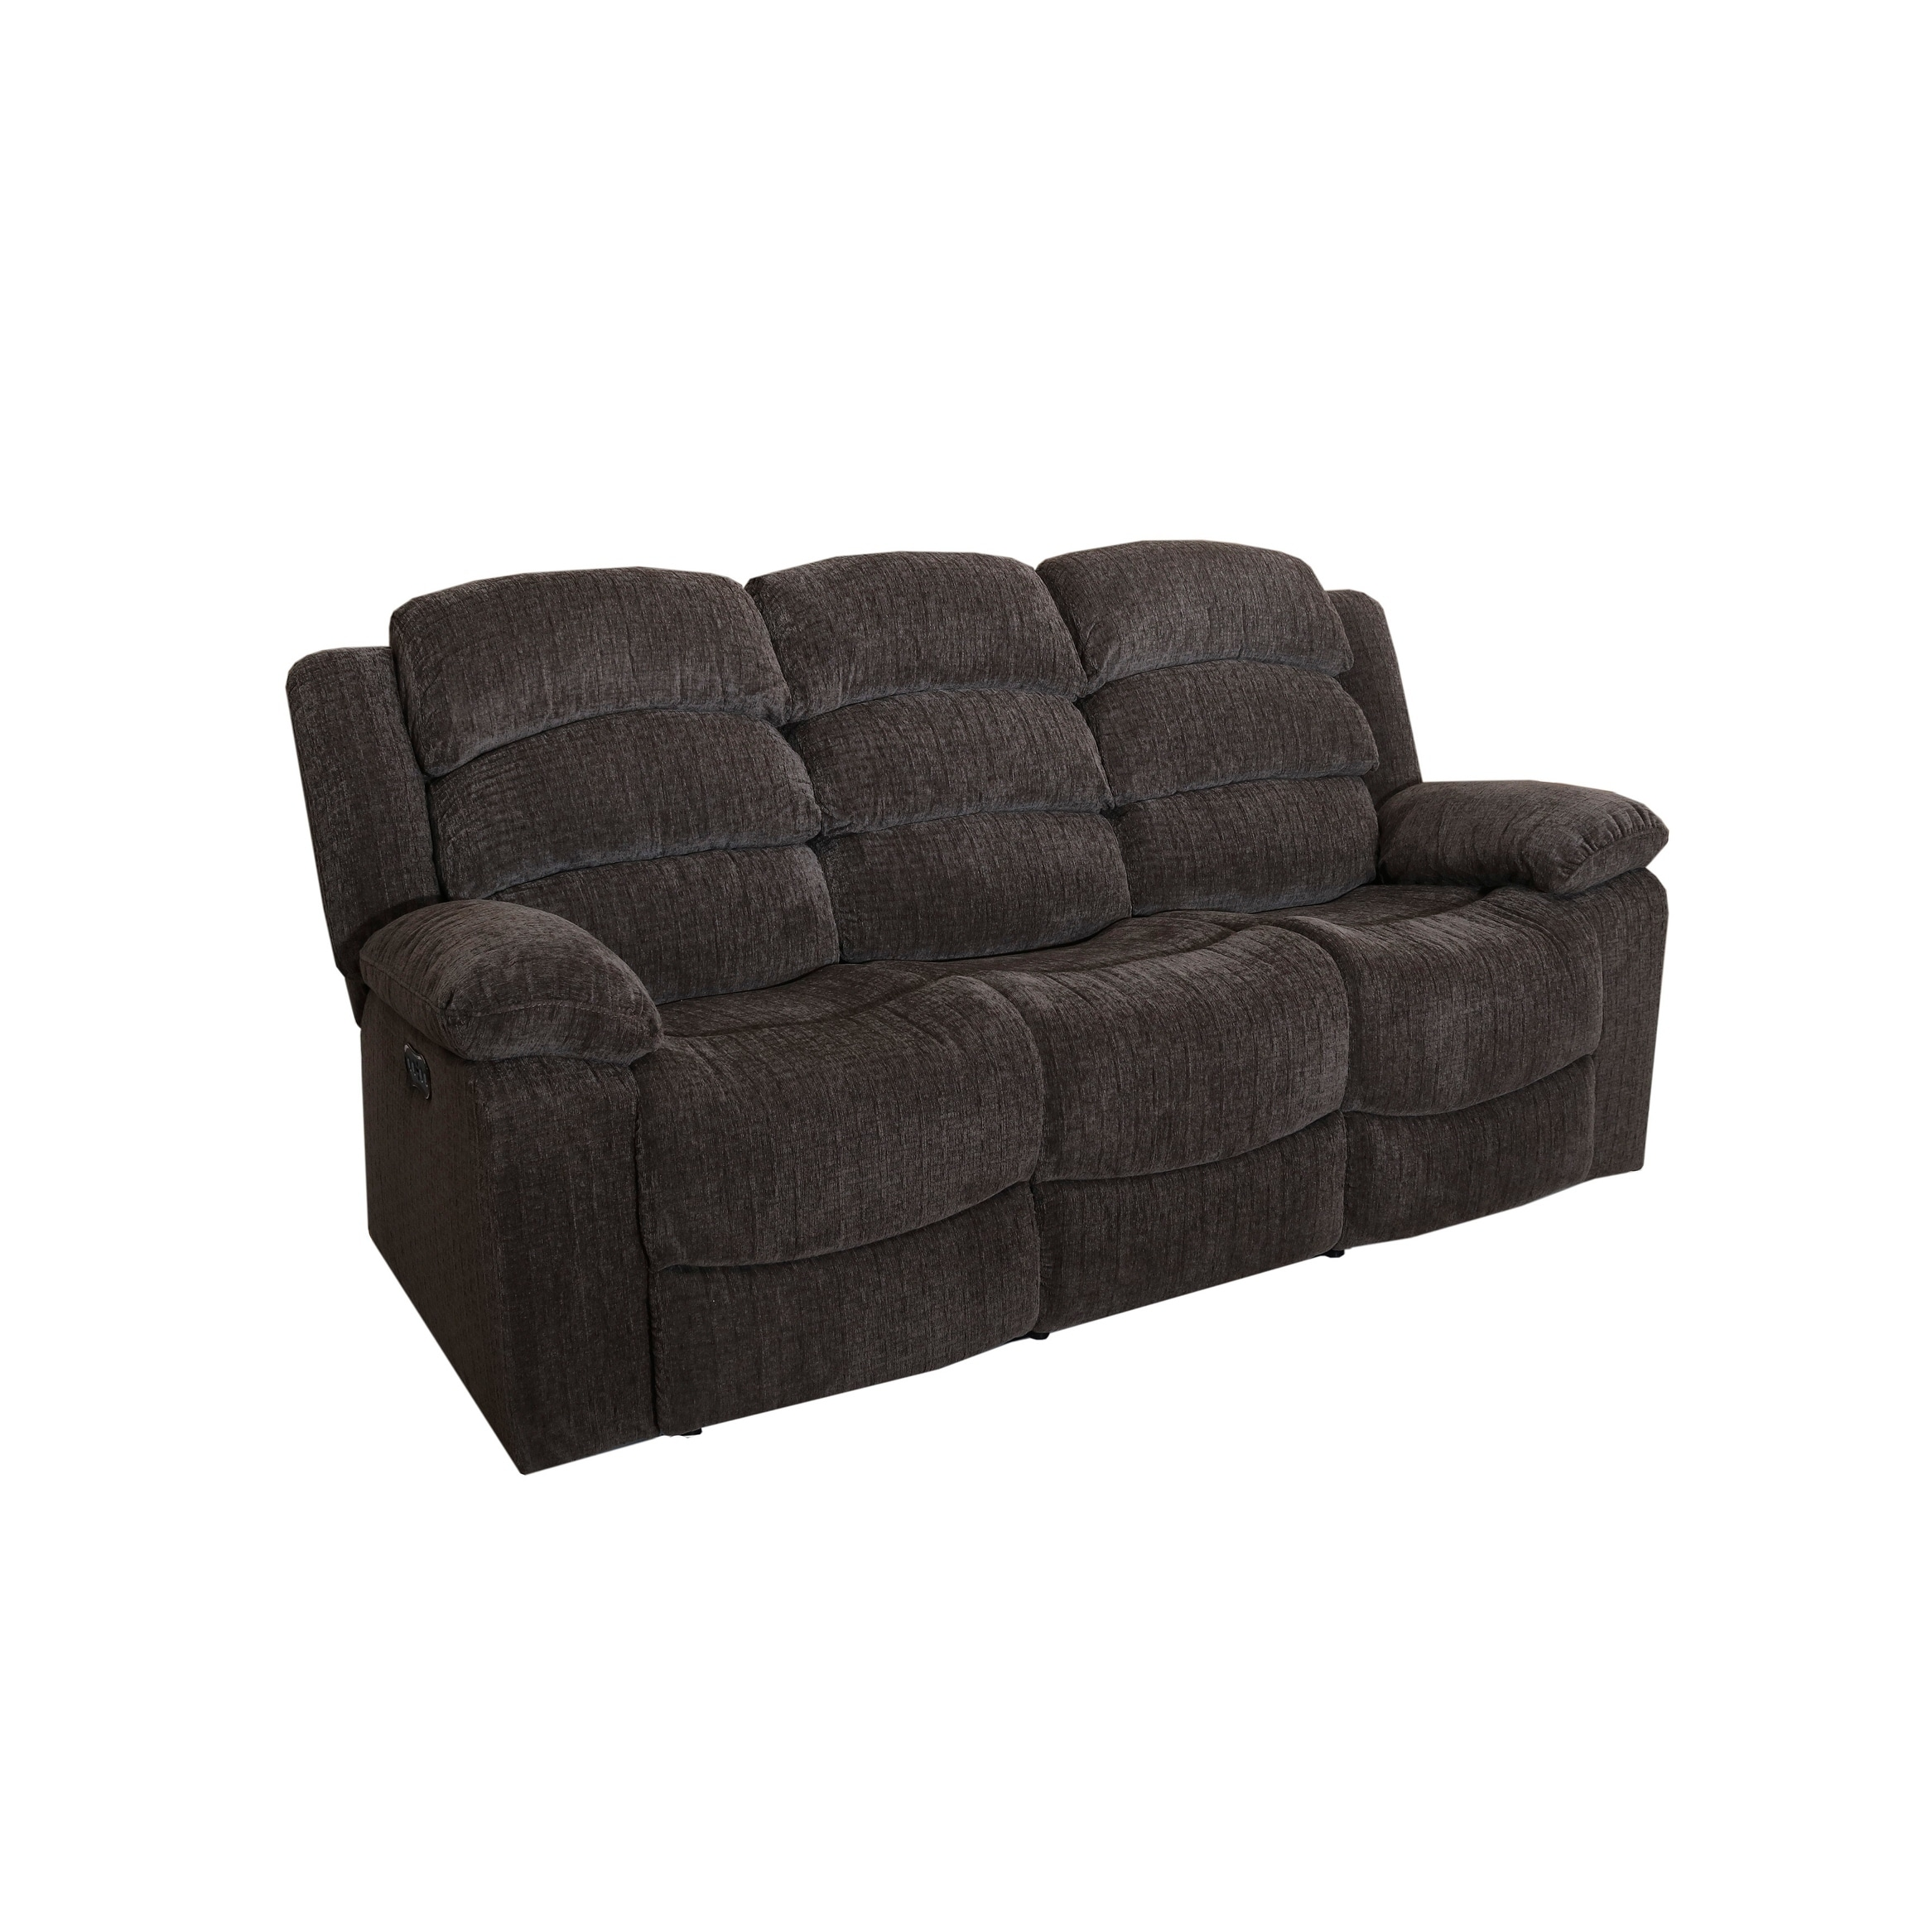 Shop Austin Stone Full Power Dual Recliner Sofa With Headrest On